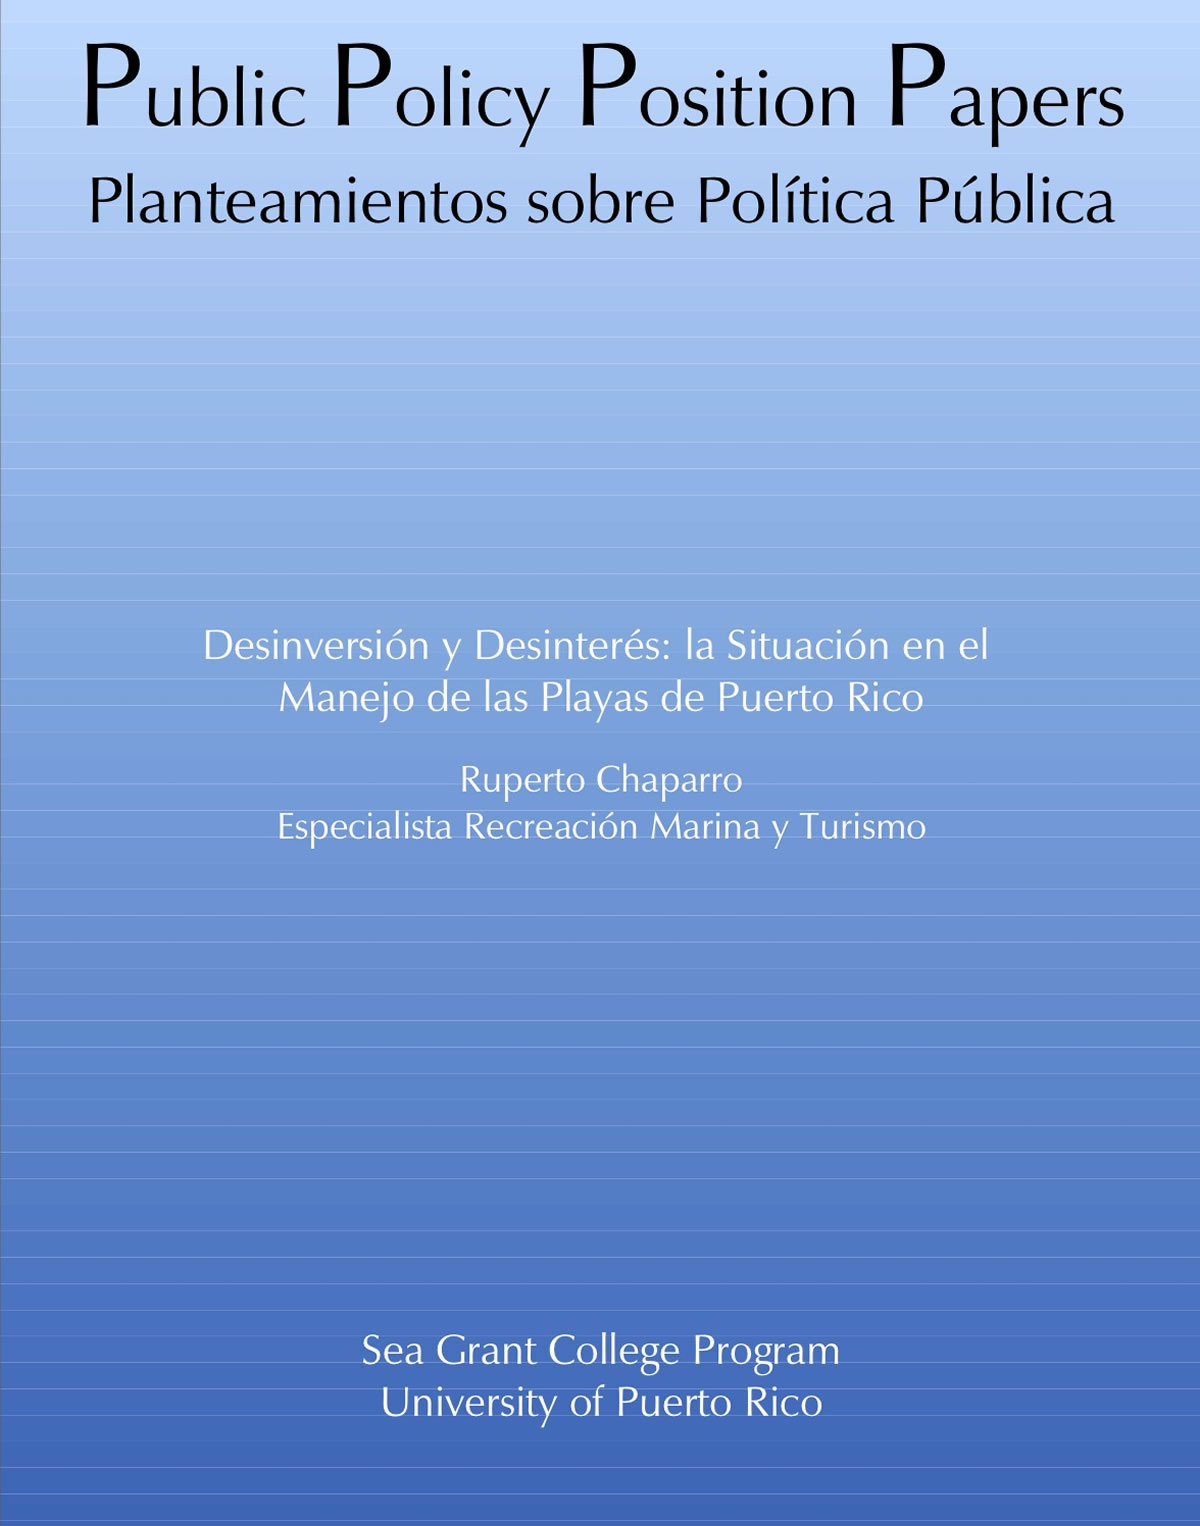 Public Policy Position Papers - Planteamientos sobre Política Pública